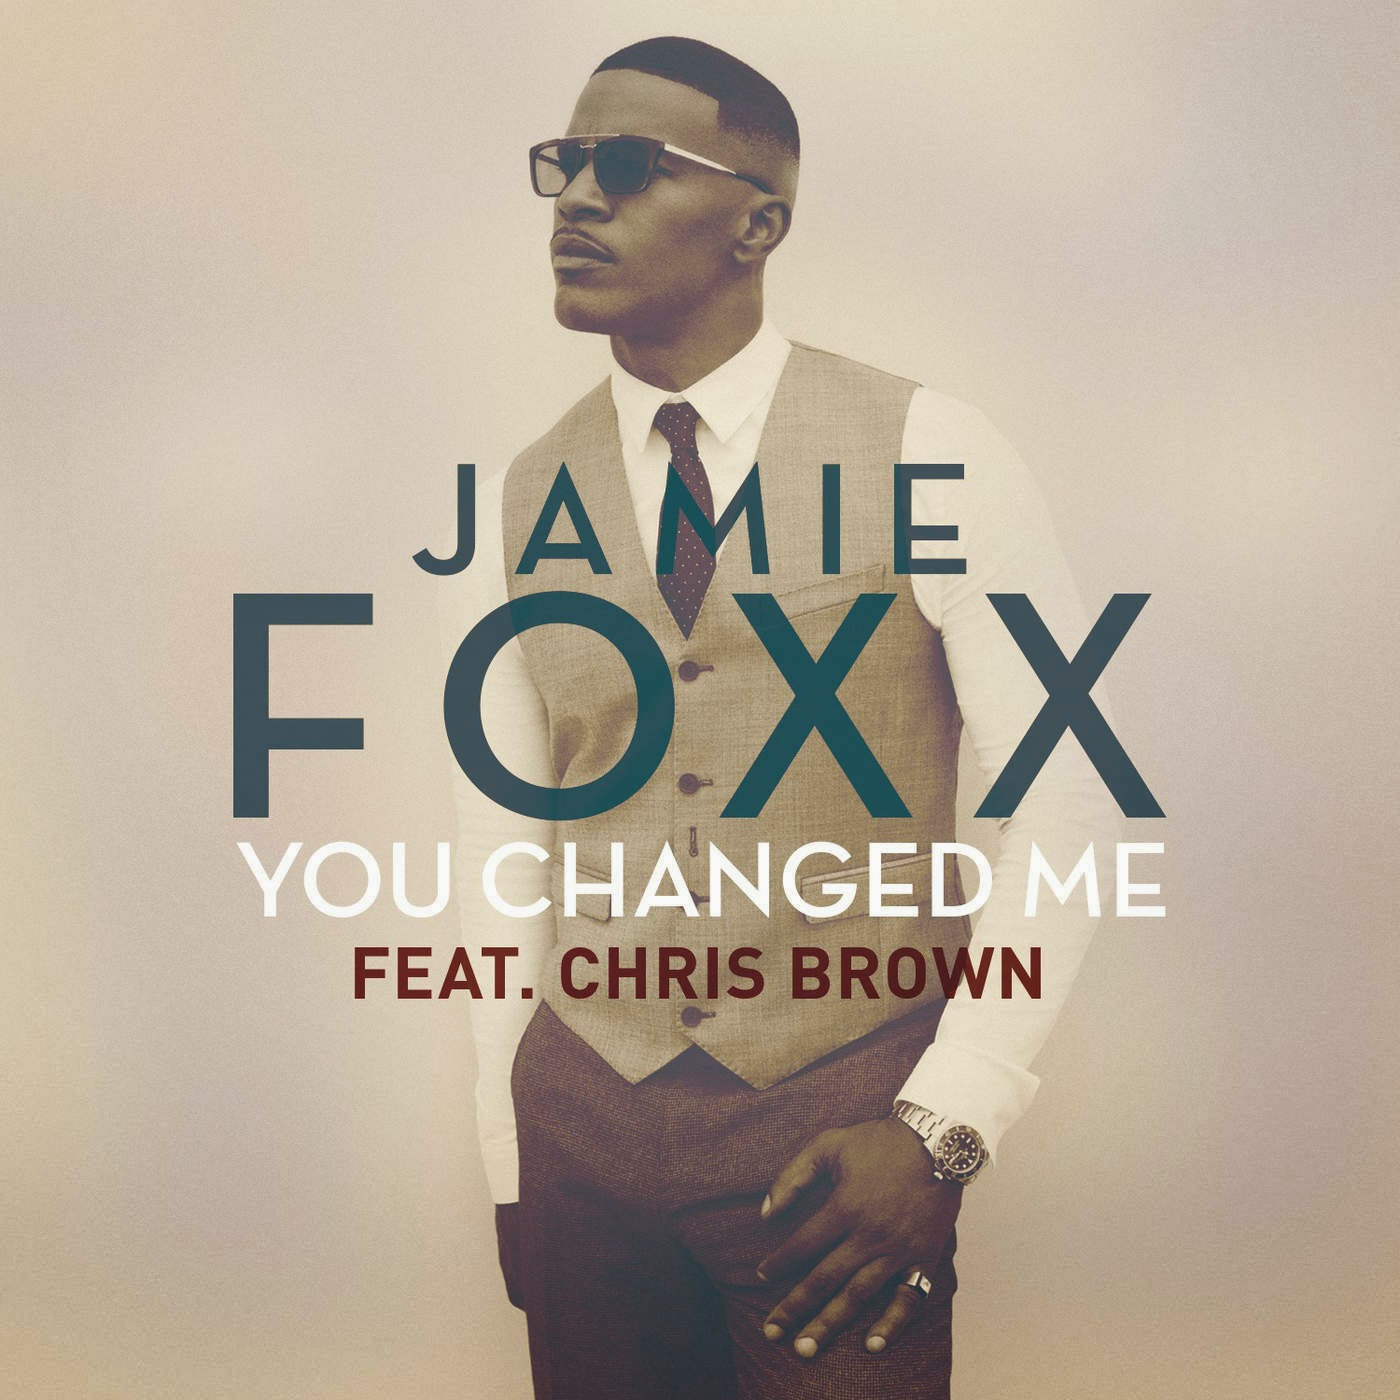 Jamie Foxx - You Changed Me (feat. Chris Brown) - Single Cover